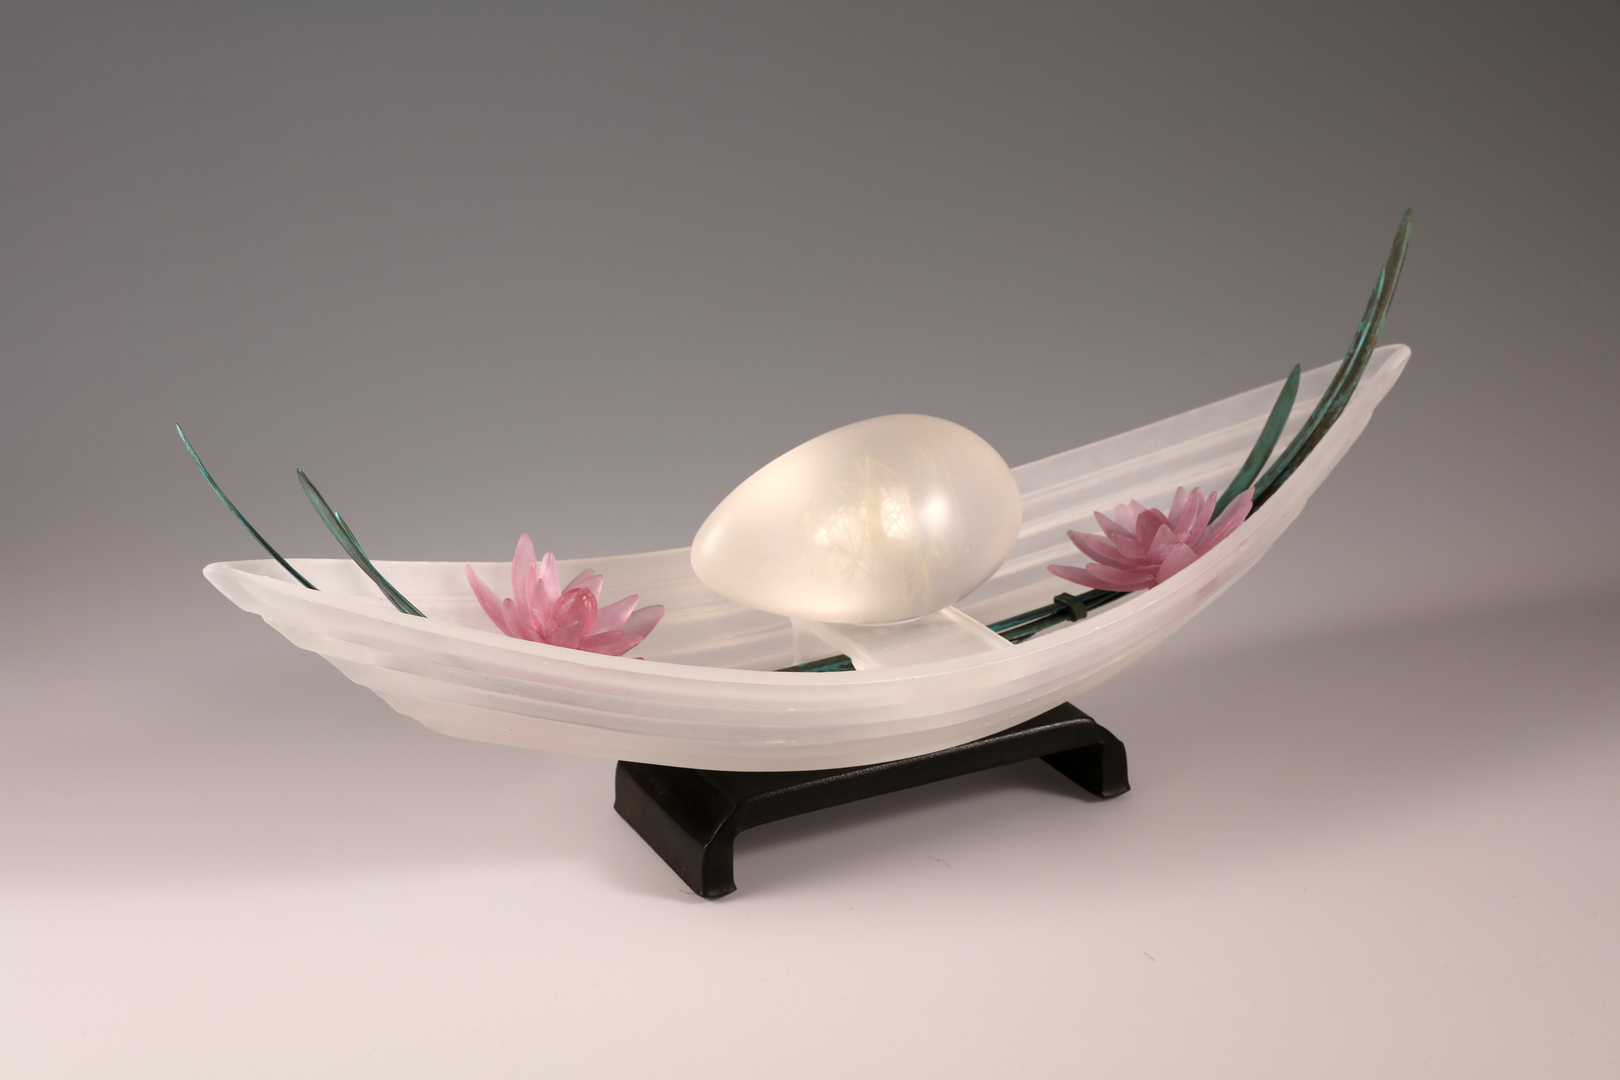 Sculpture of cast glass boat and lavender flowers with bronze leaves on steel base.